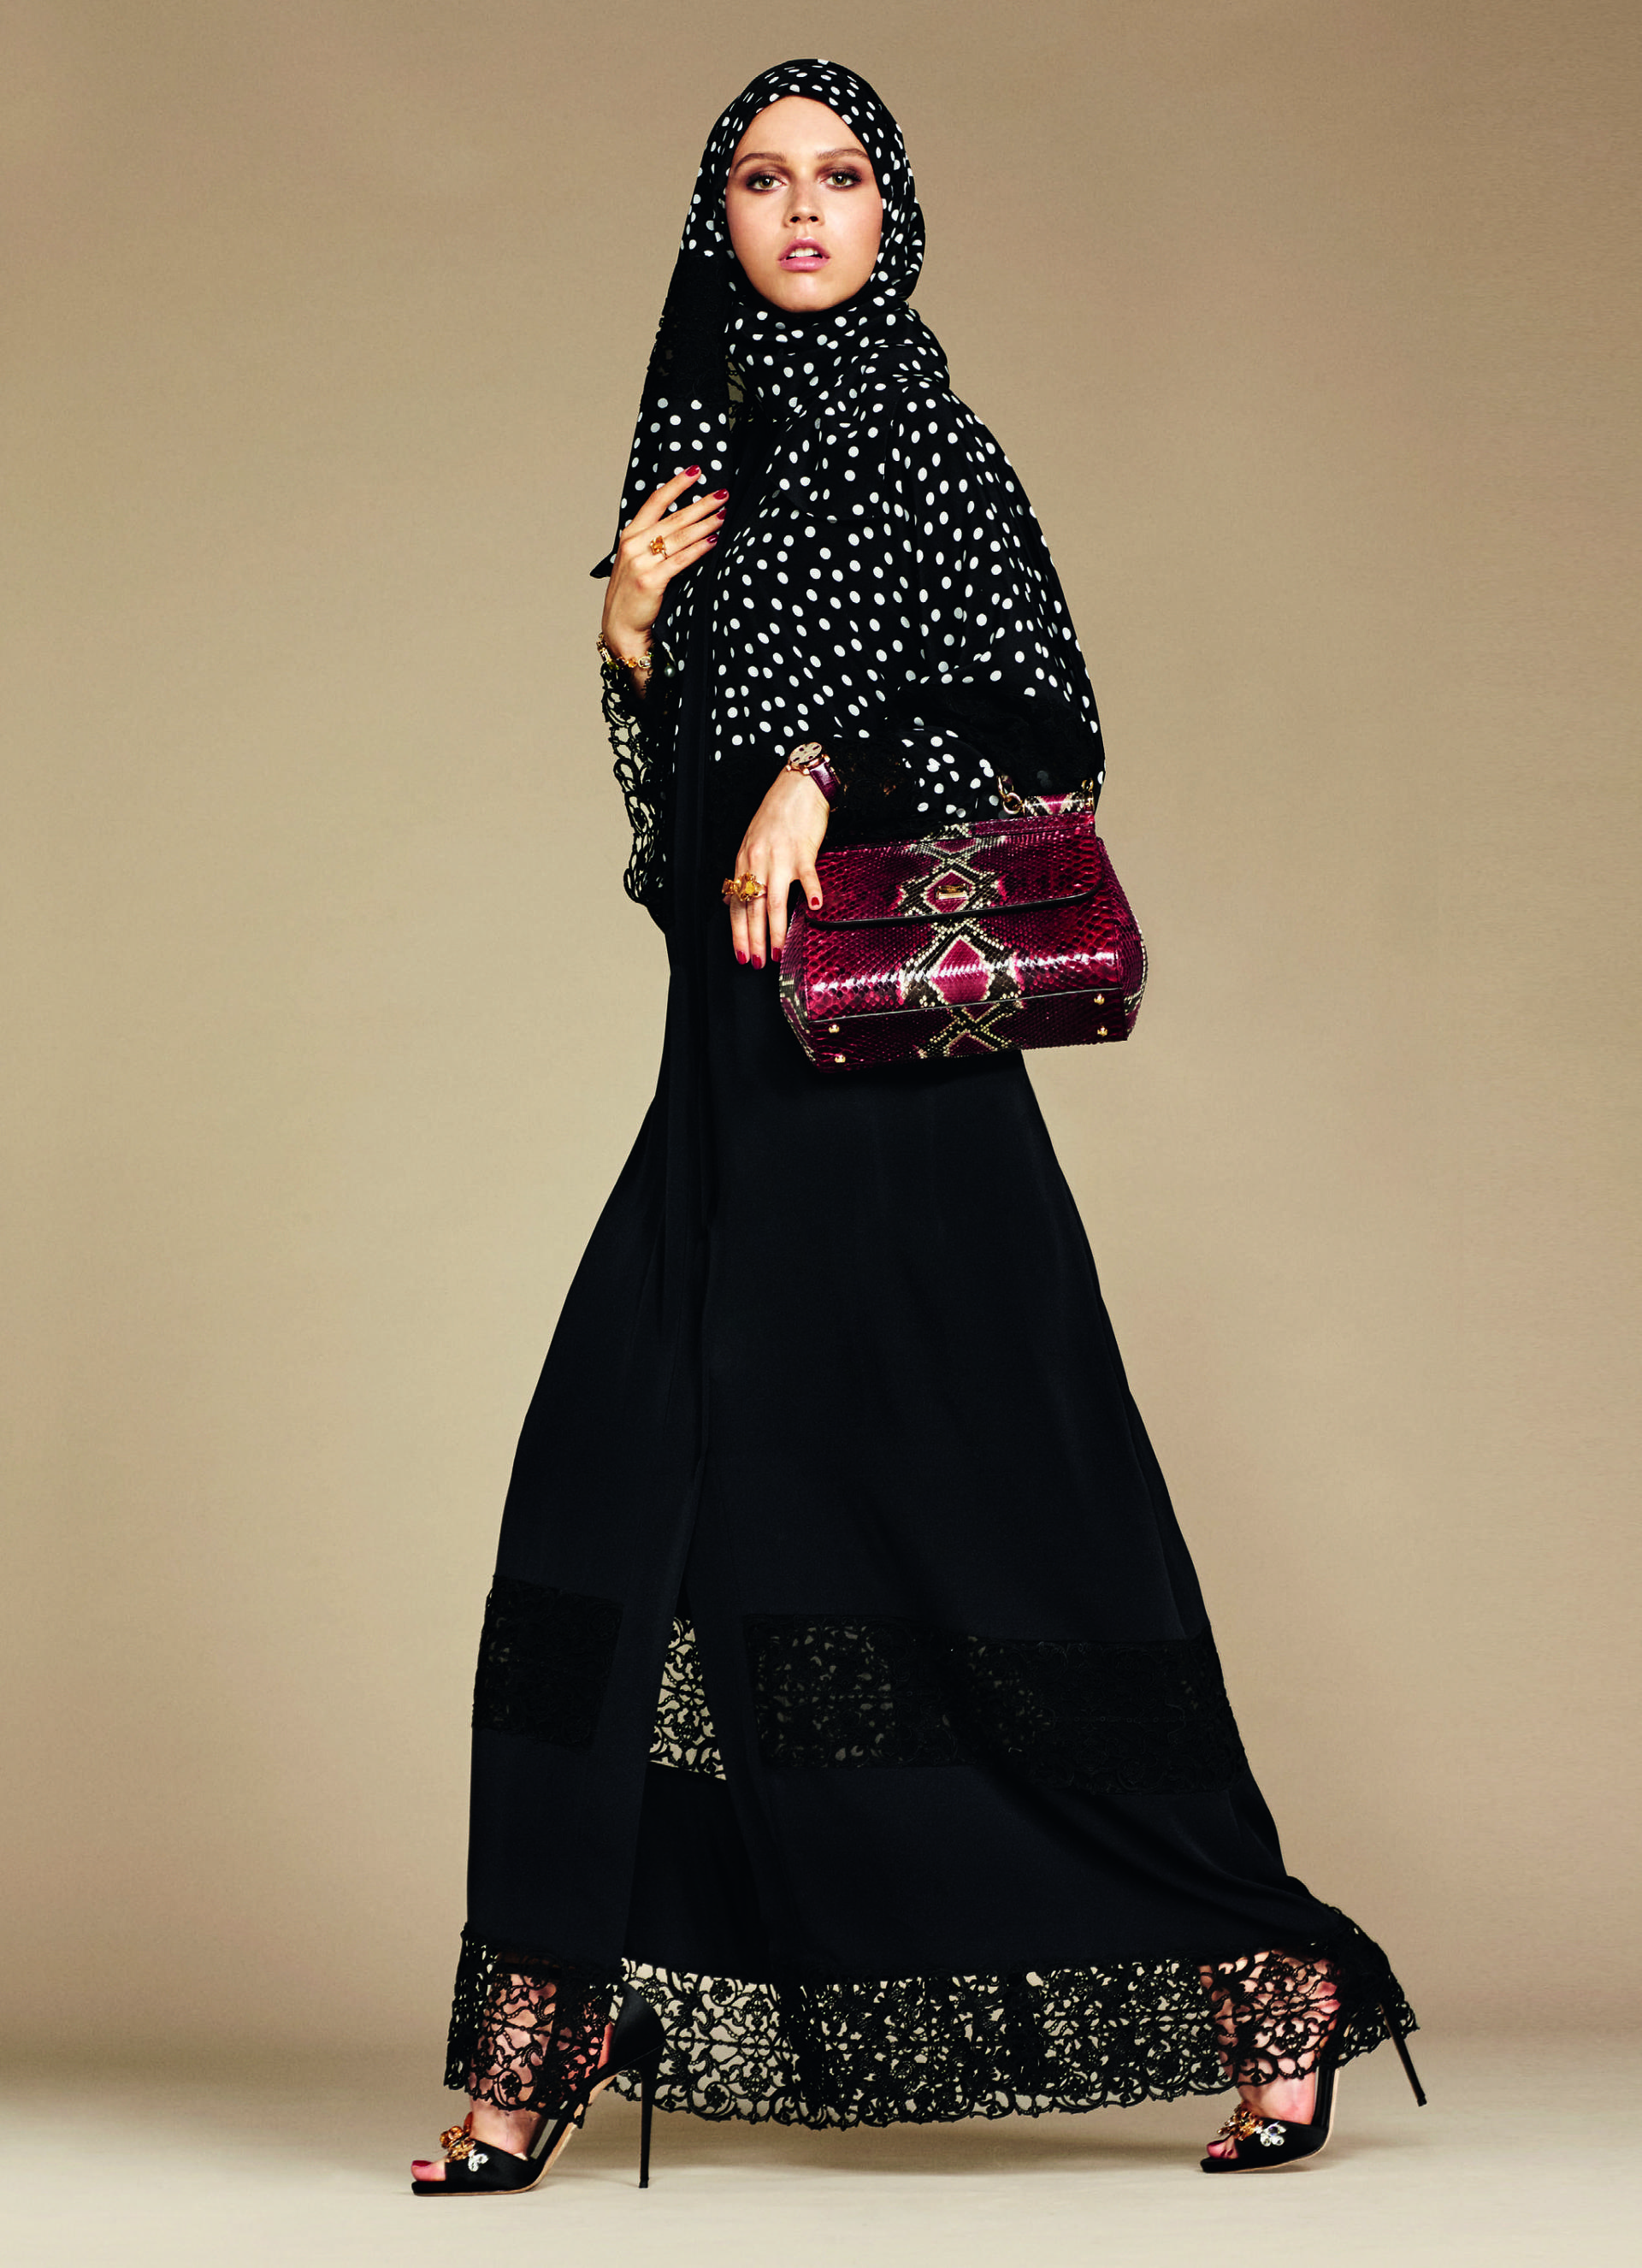 Over_Exposed_Dolce-Gabbana-Hijab-Abaya-Collection19